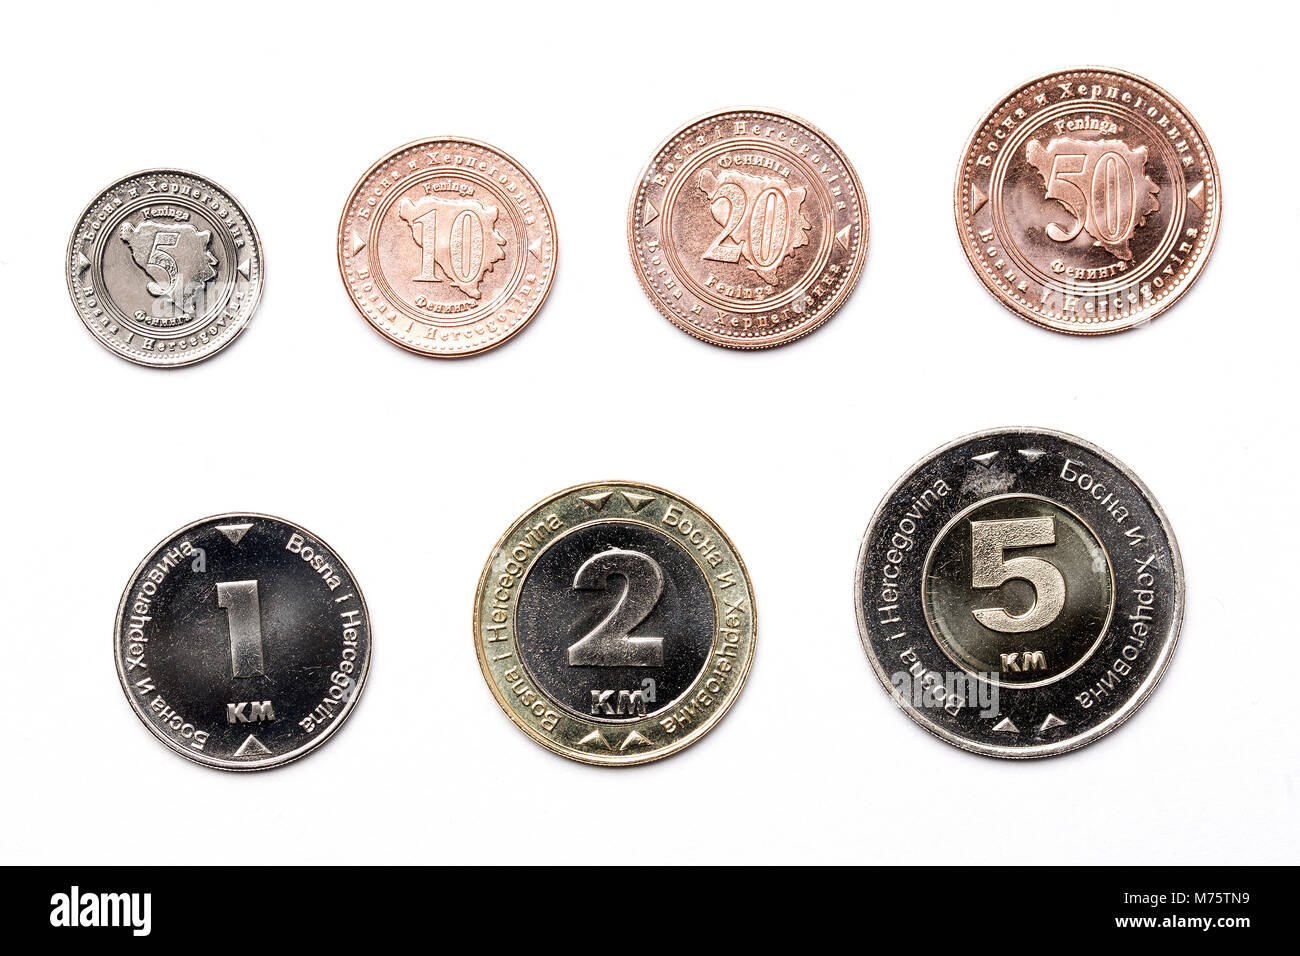 Coins from Bosnia and Herzegovina on a white background - Stock Image